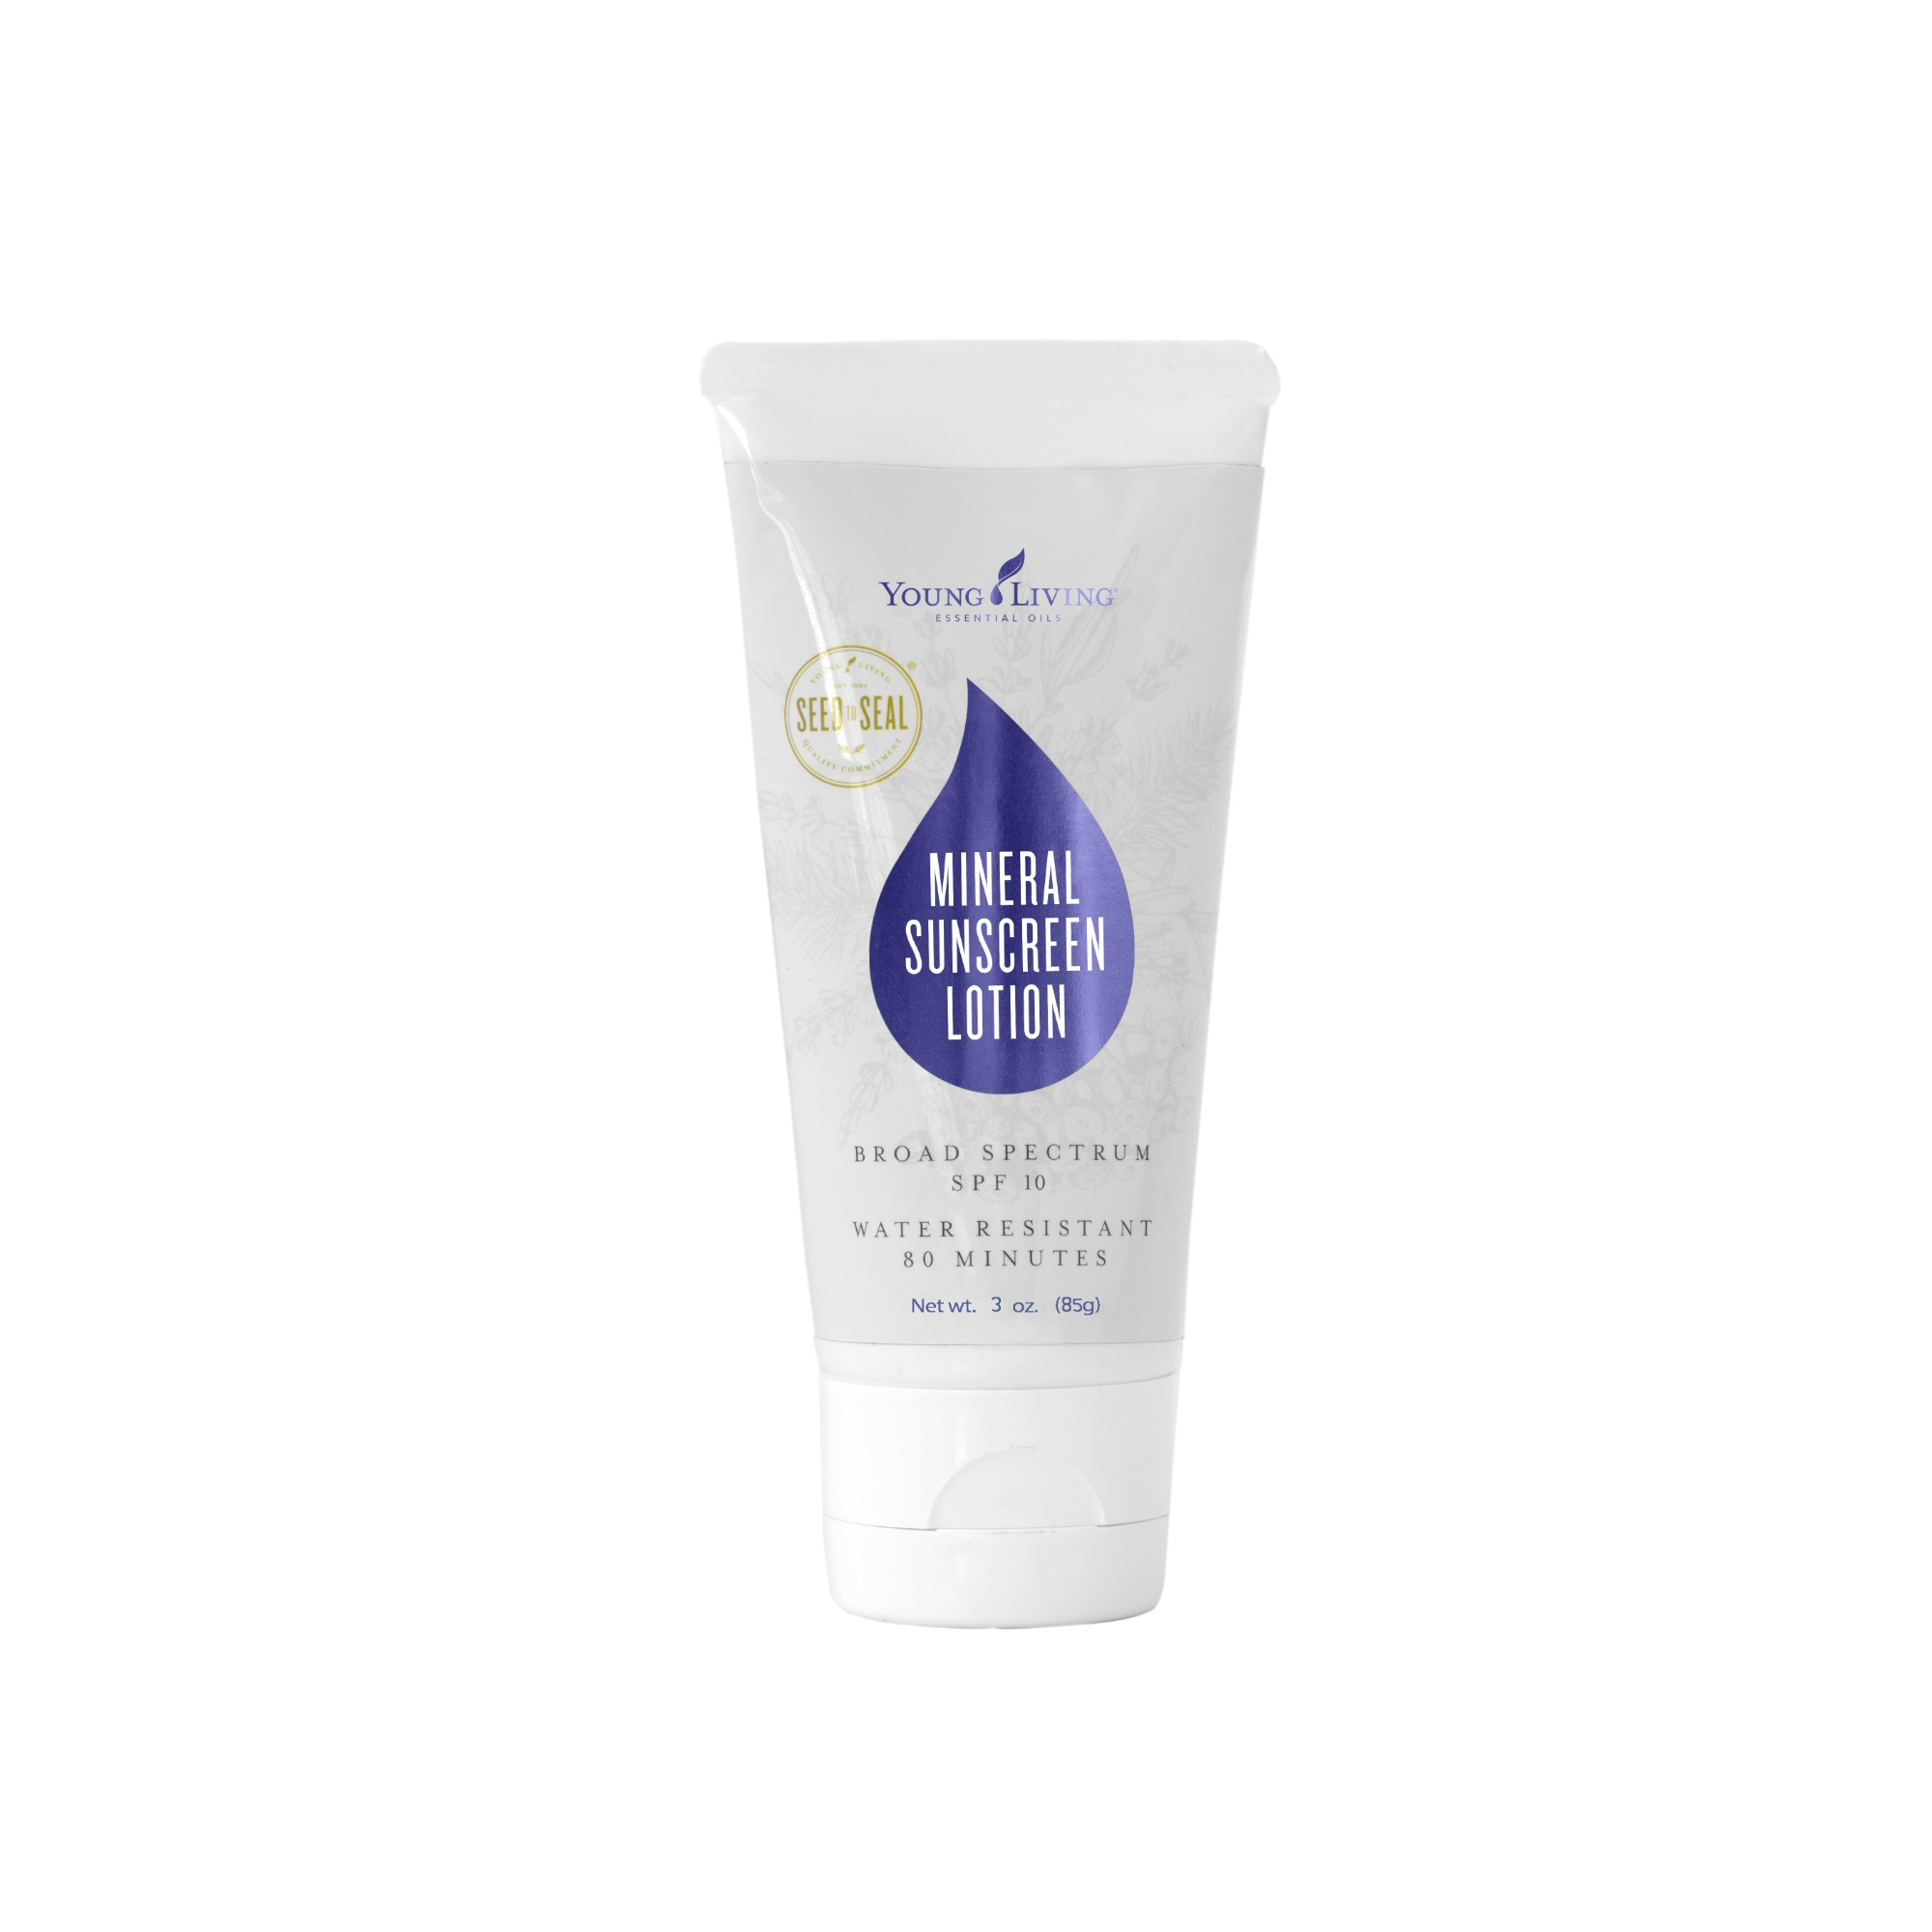 MINERAL SUNSCREEN (SPF 10)    This sunscreen provides protection against UVA and UVB rays without harsh chemical ingredients. Non-greasy, reef-safe, SPF 10 protection, with non-nano zinc oxide. Goes on smooth and stays water and sweat-resistant for 80 minutes. Contains hypoallergenic ingredients and skin-loving essential oils like Helichrysum, Carrot Seed, and Sacred Frankincense.   Click here   to learn more about this product.